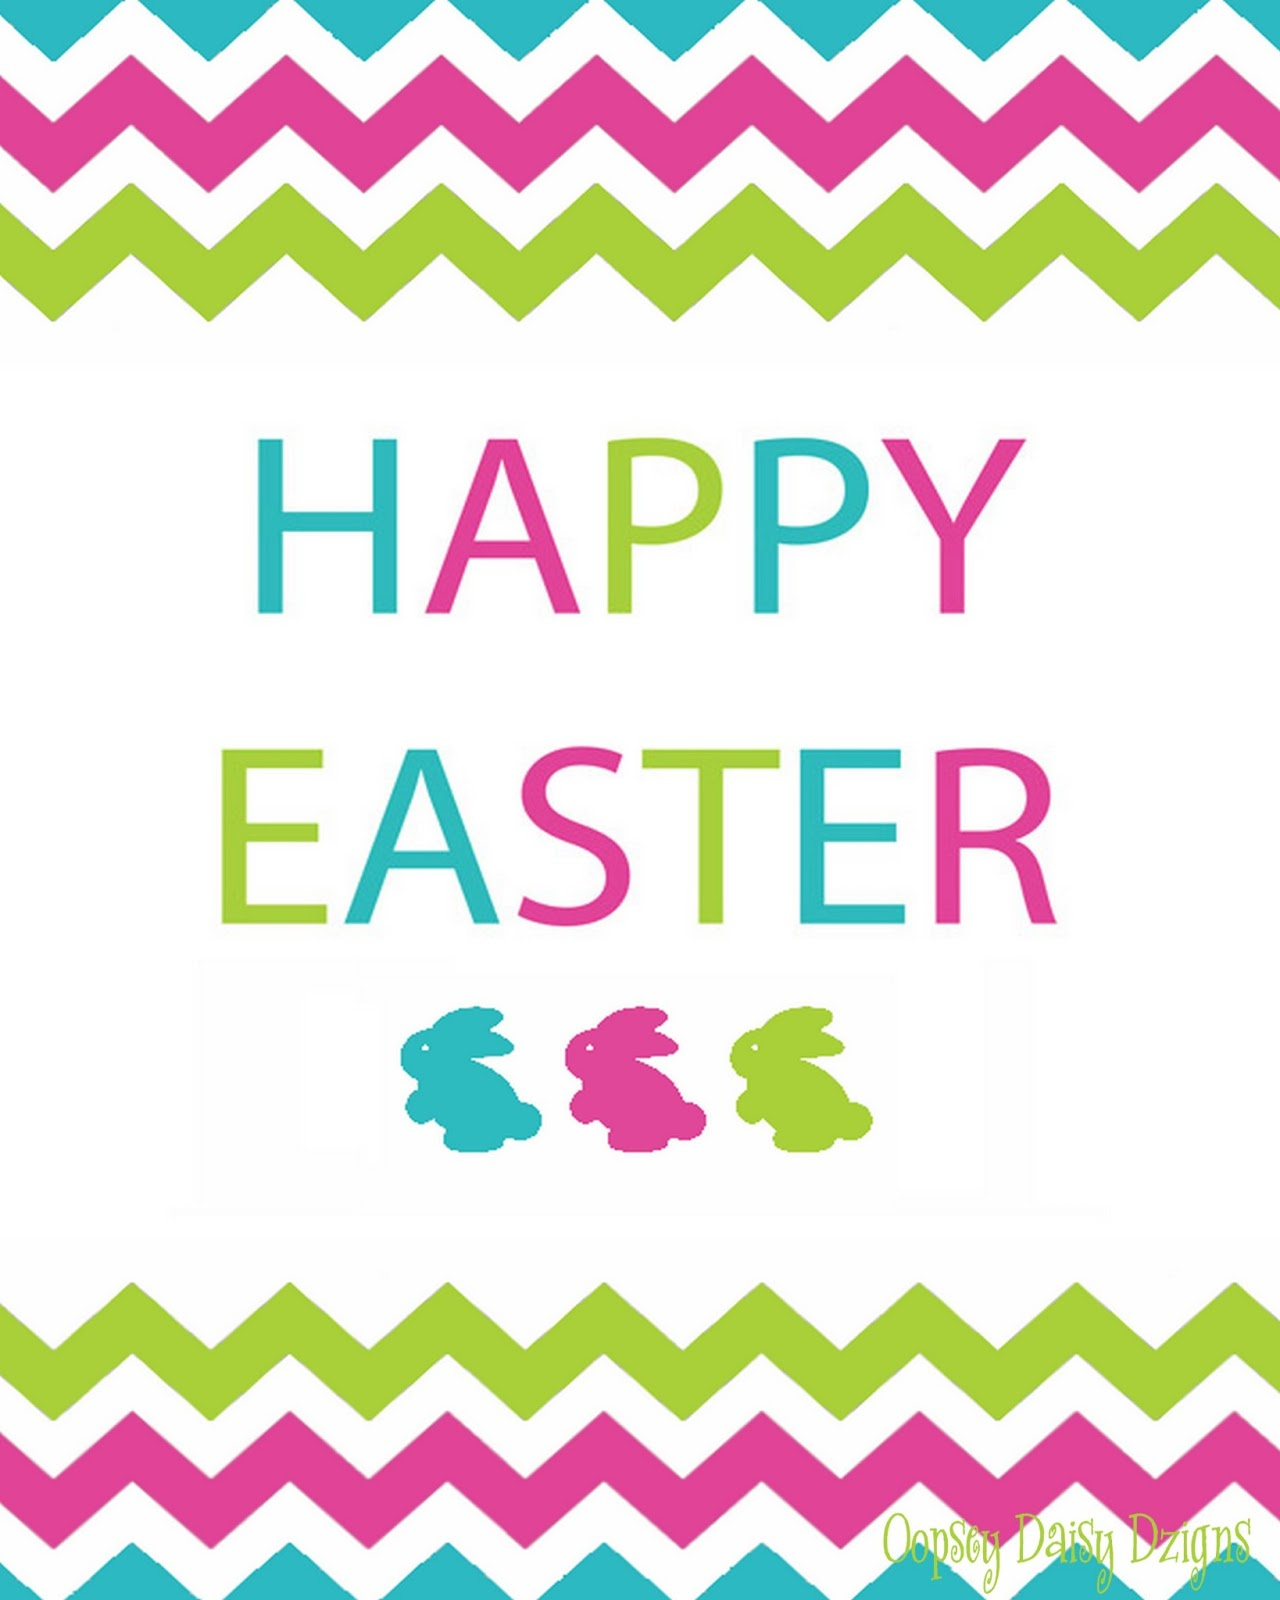 Free Printable Easter Cards To Colour In – Hd Easter Images - Free Printable Easter Cards